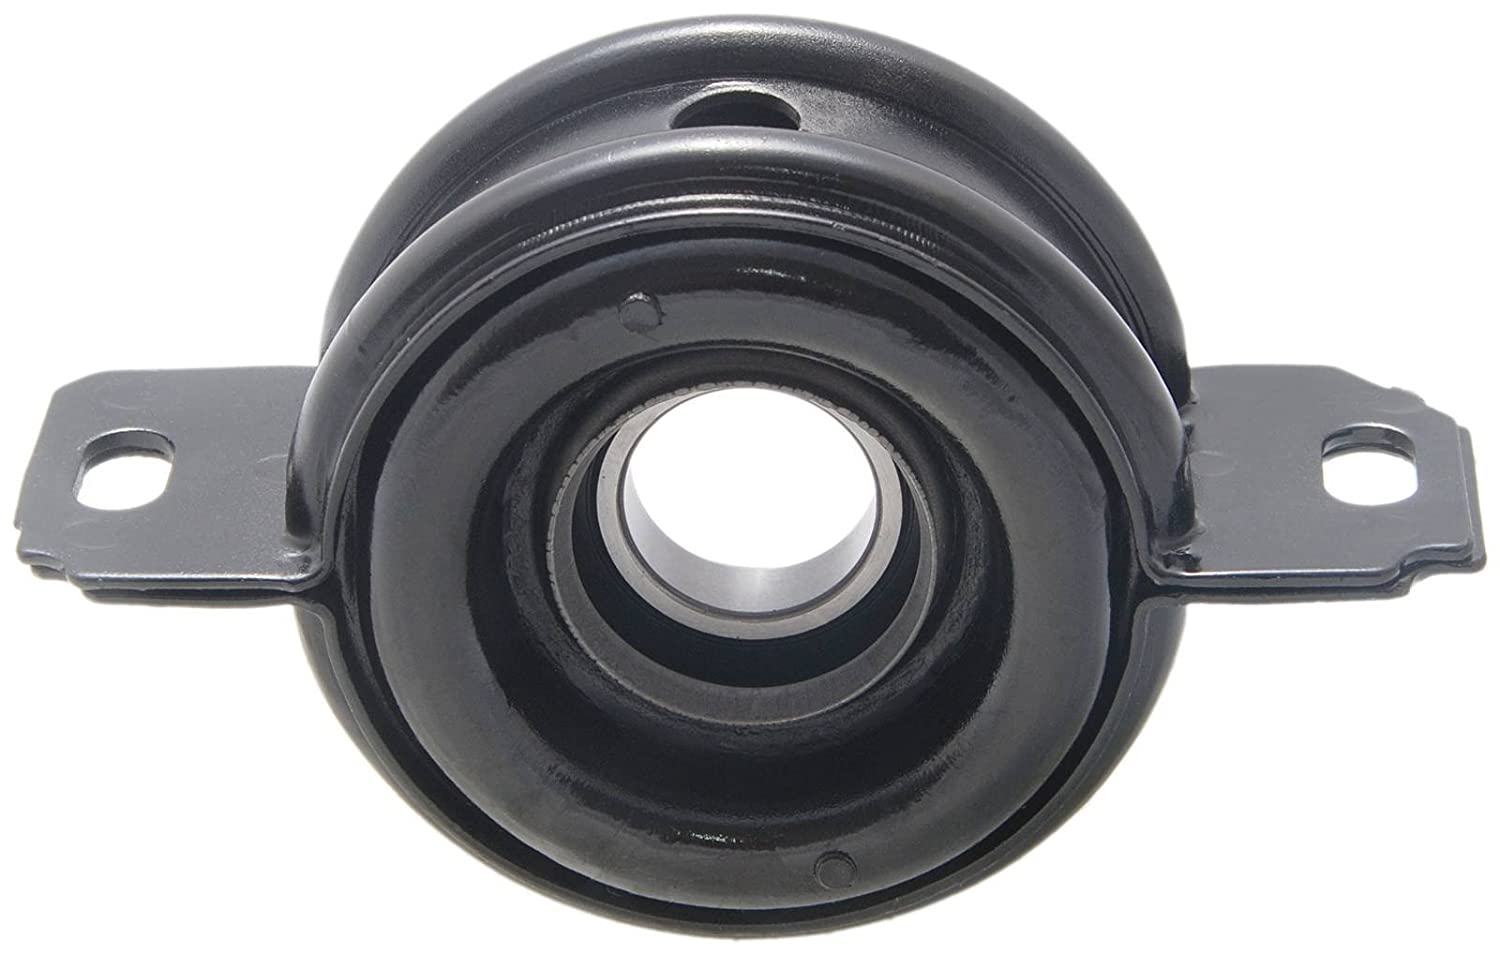 3723026020 - Center Bearing Support For Toyota Febest